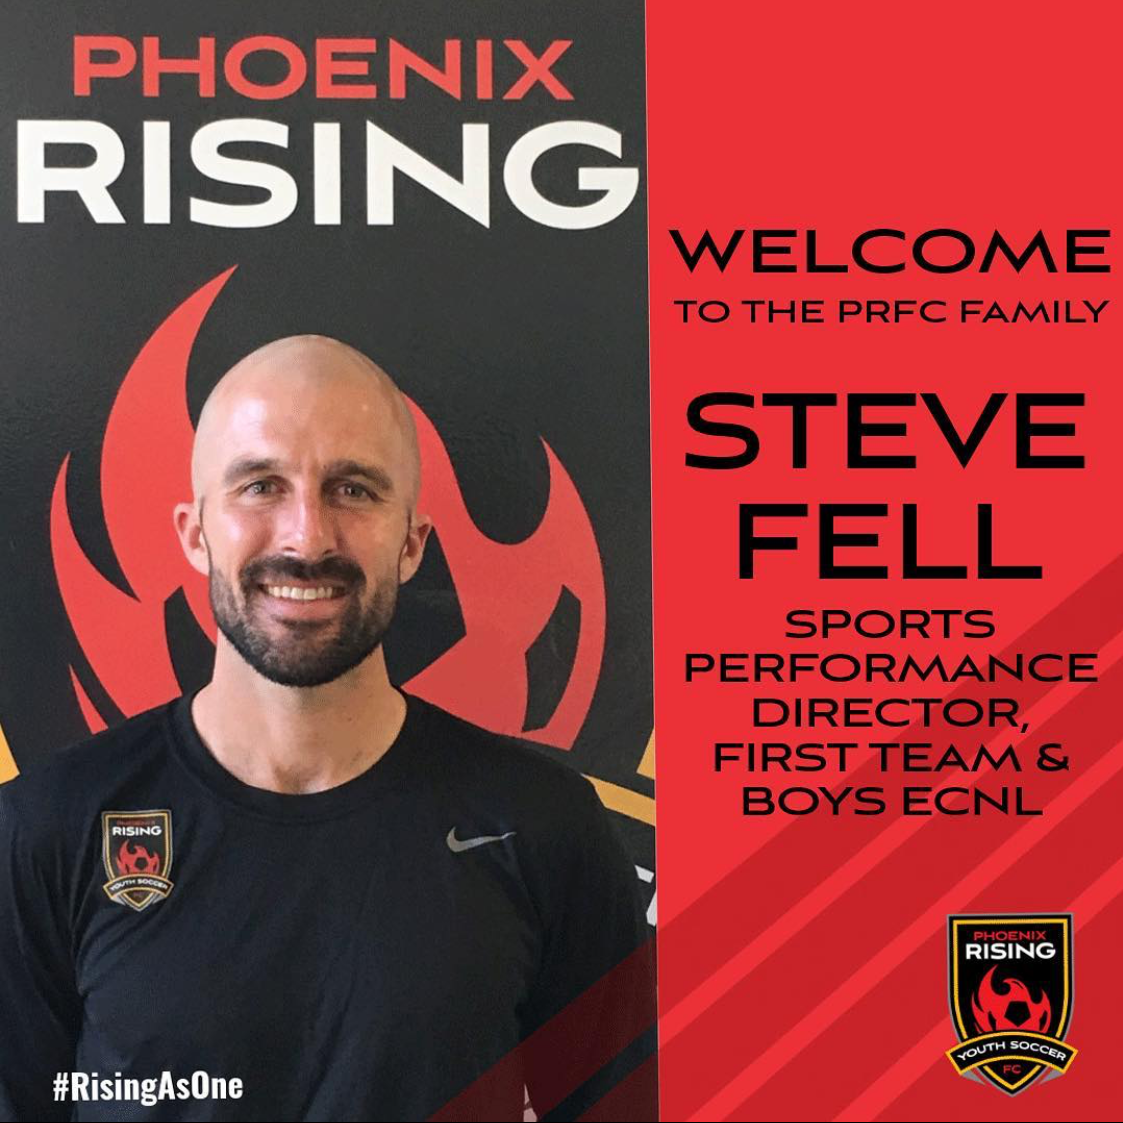 PRFCYS Welcomes Steve Fell